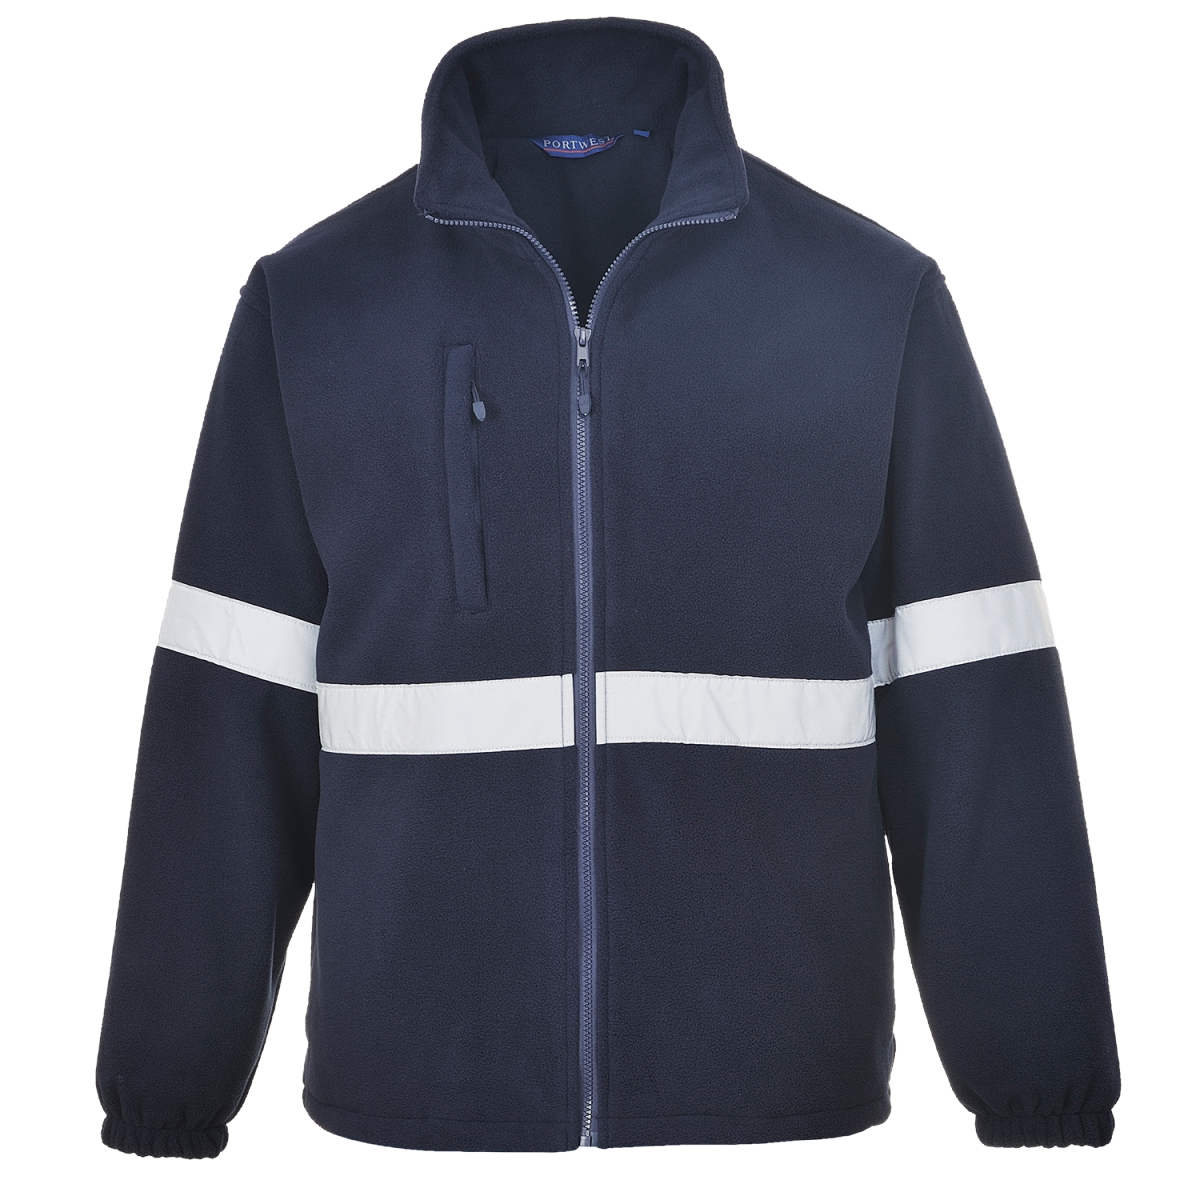 Fleecejacke Safety mit Reflexstreifen